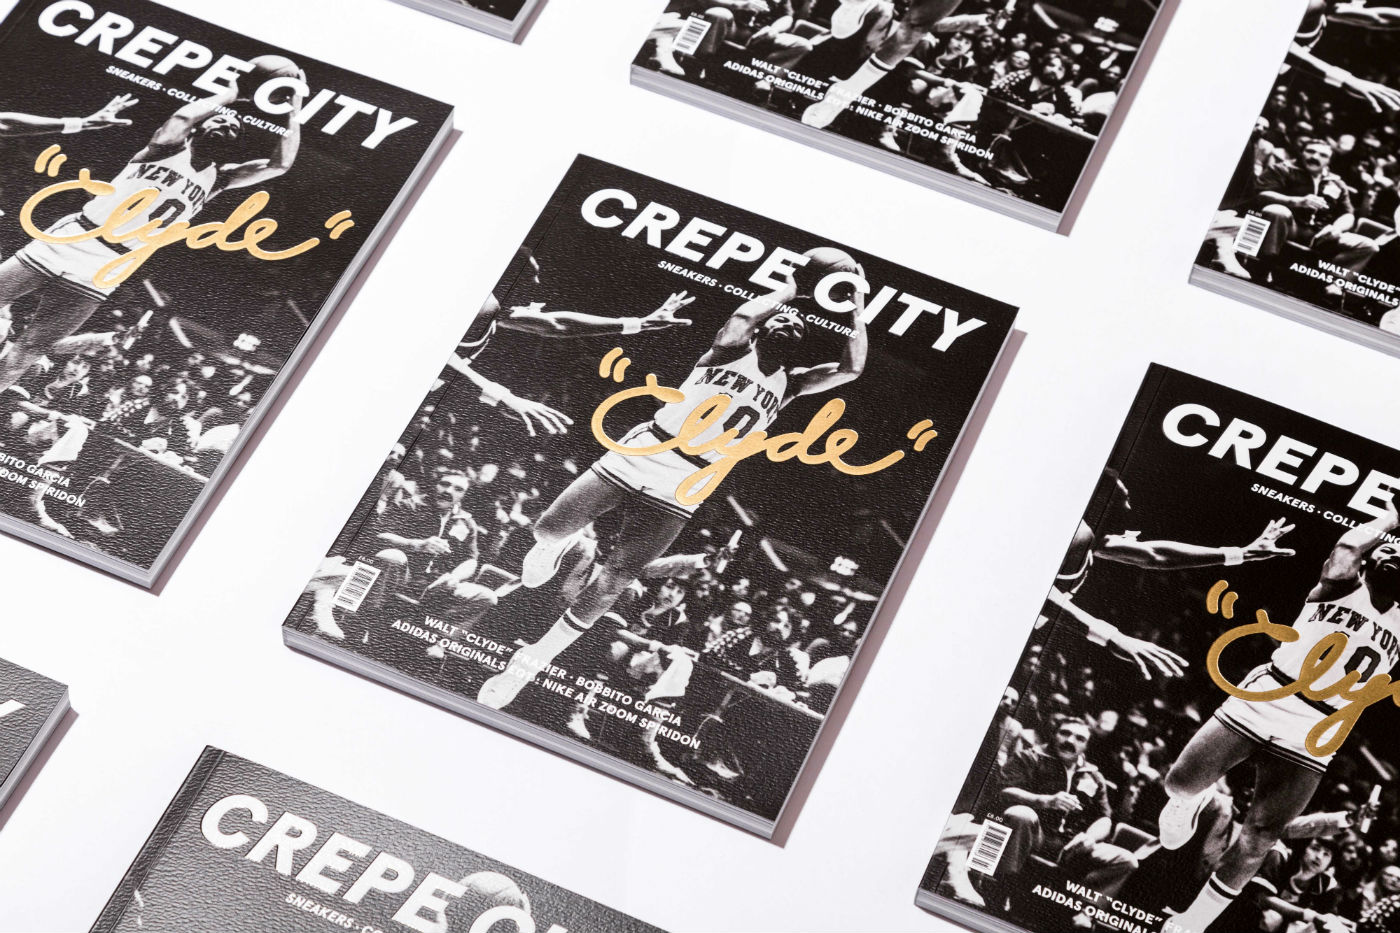 crepe city issue 03